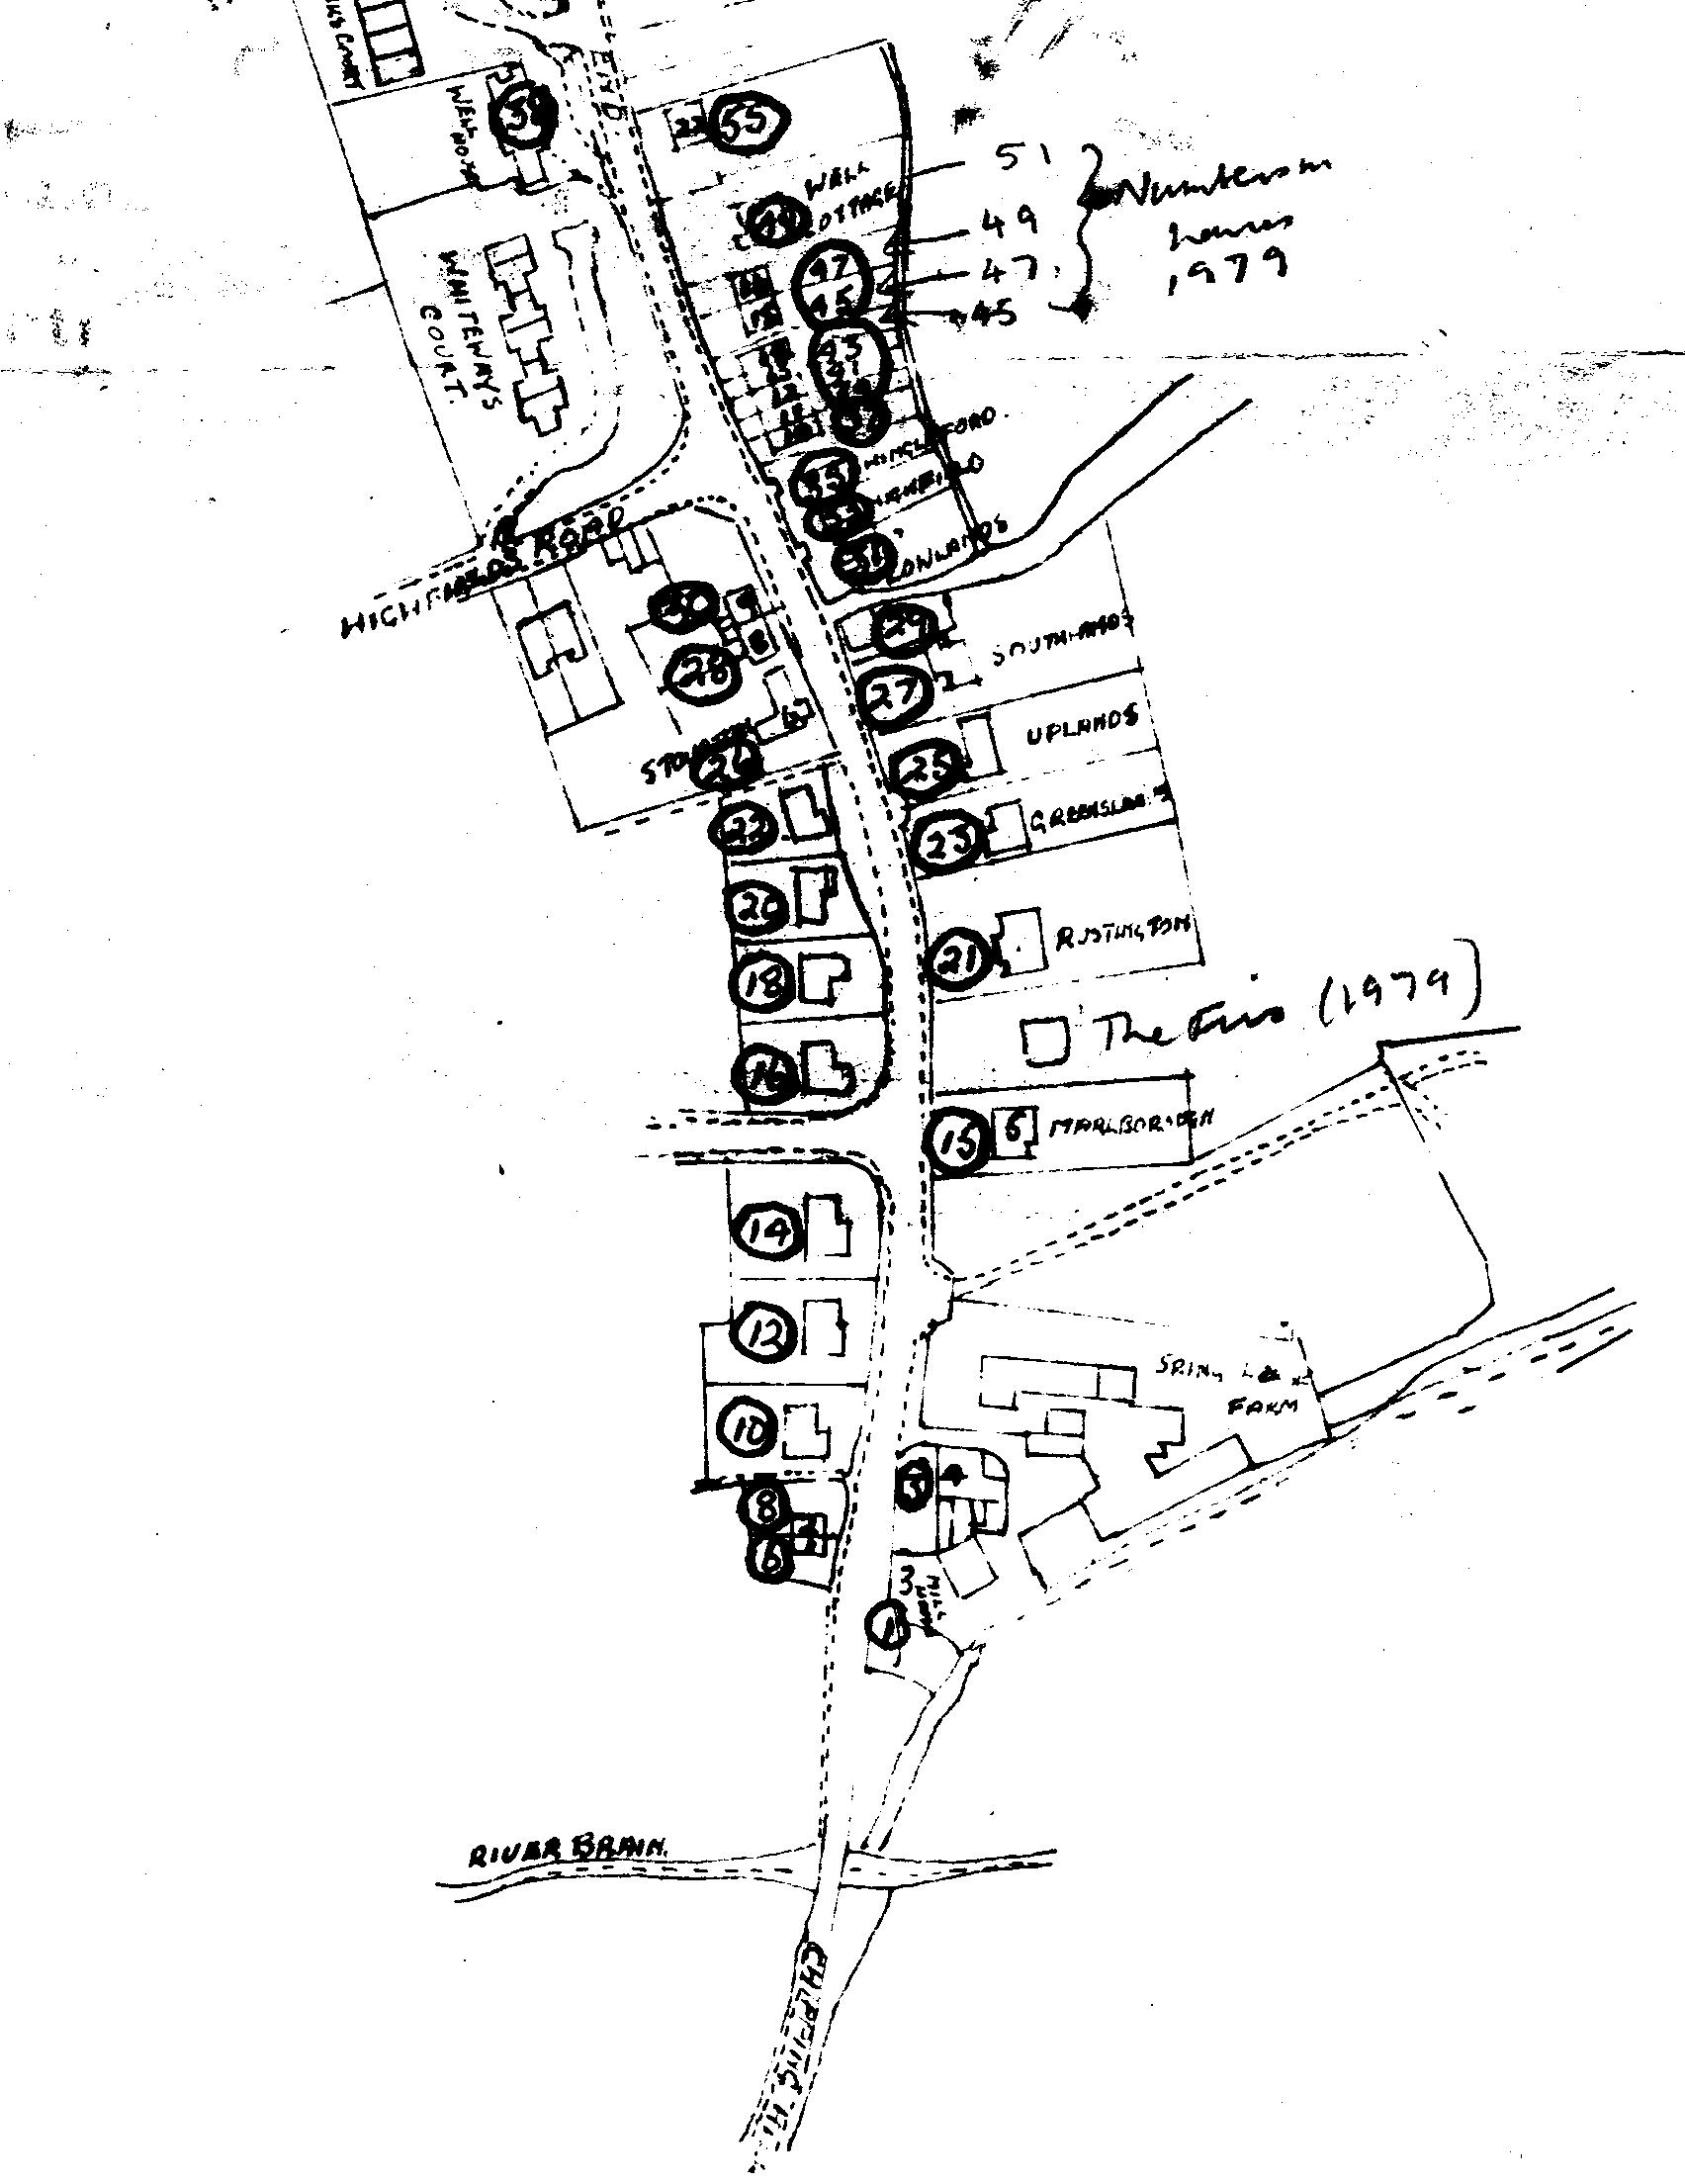 Street re-numbering, Powershall End, 1970. At the top is the western part, whilst at the bottom is the eastern part. The new numbers have dark circles round them.